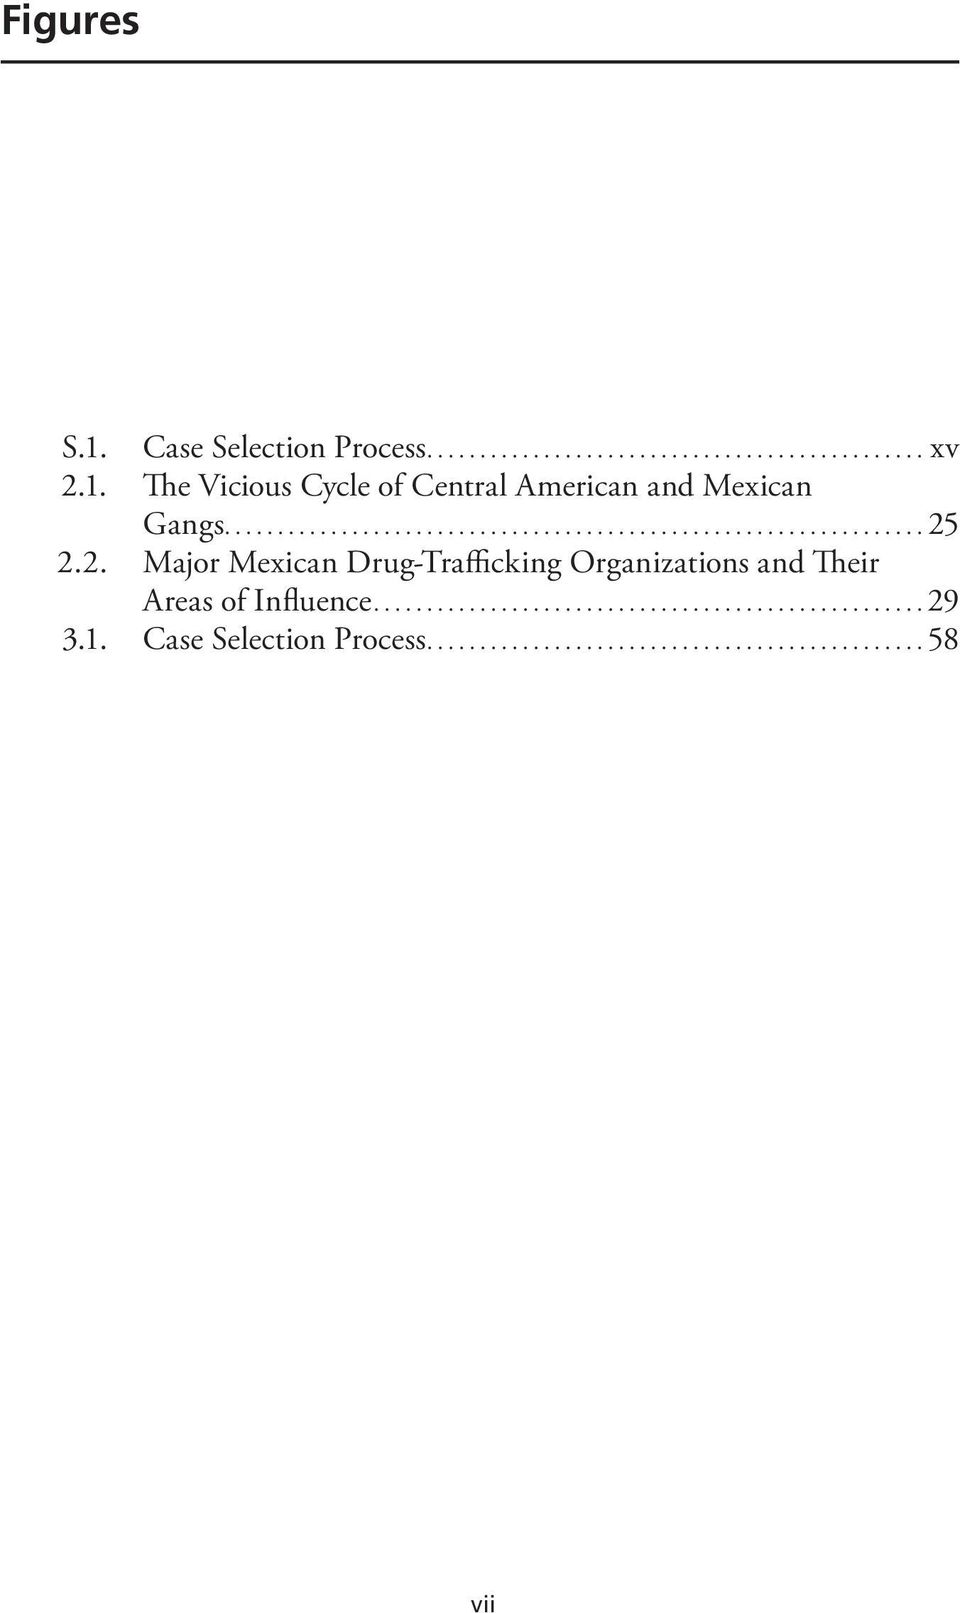 The Vicious Cycle of Central American and Mexican Gangs.